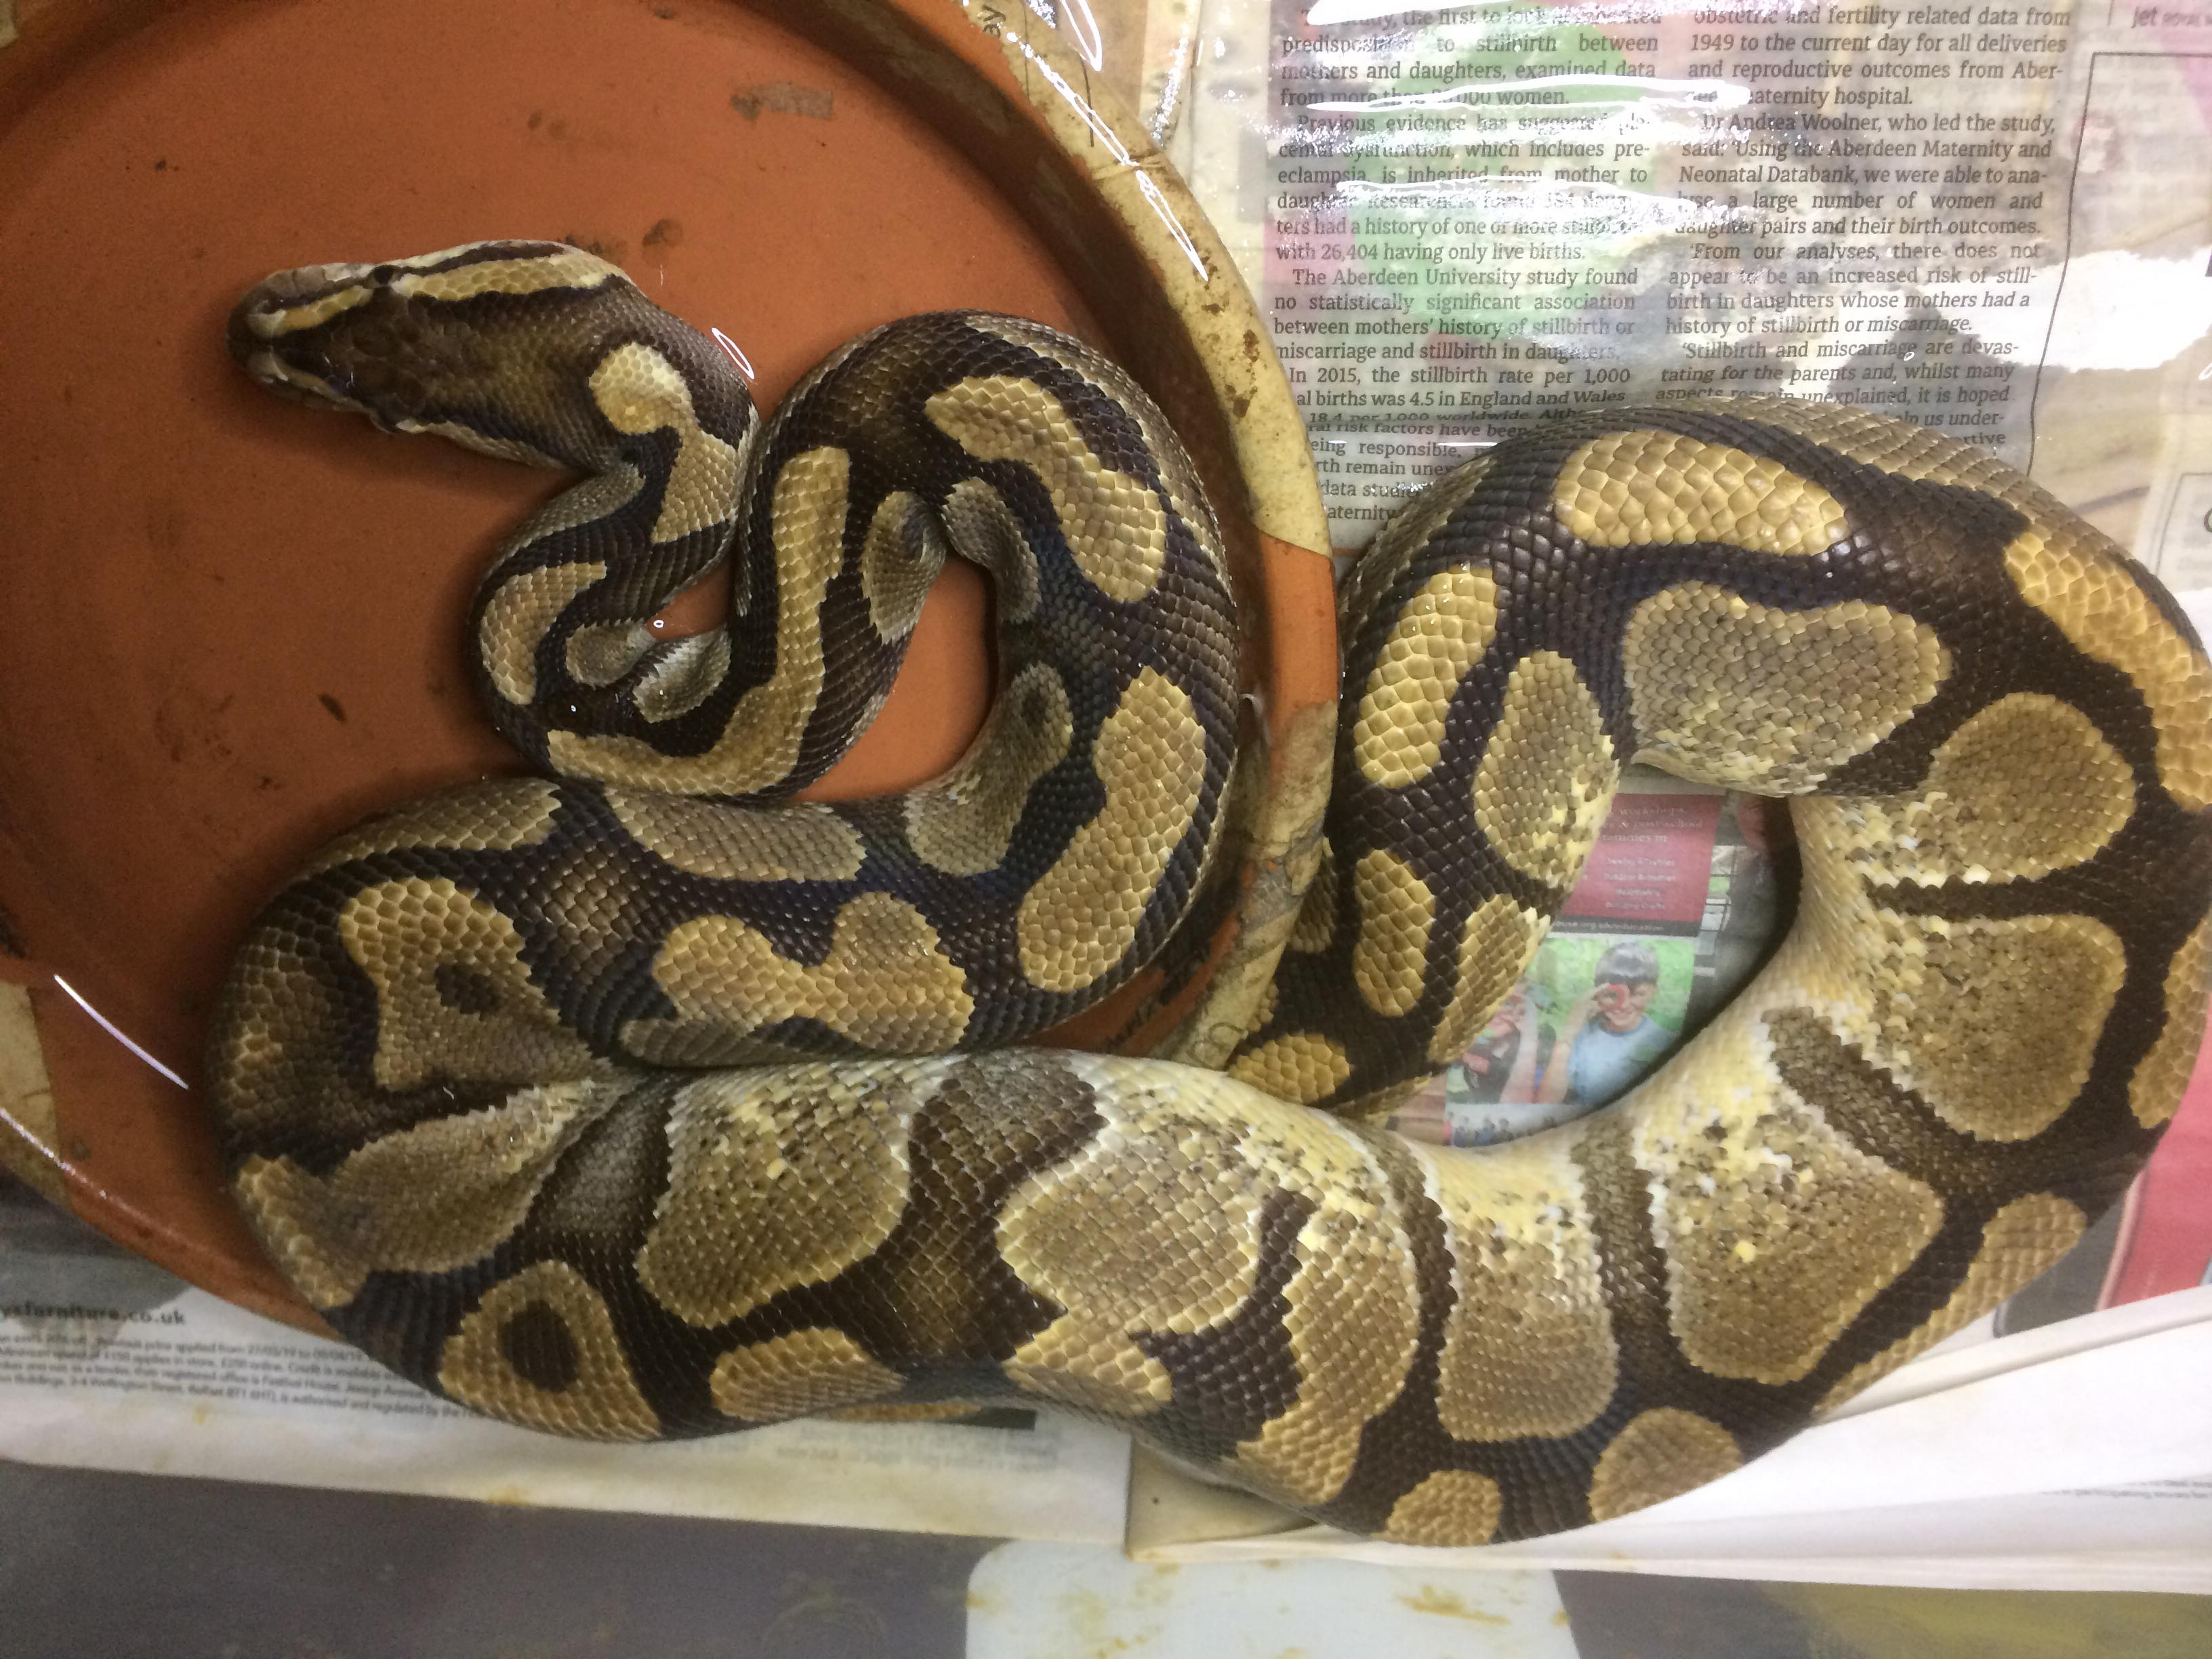 Various male and female royals for sale-67628901_705603559874106_1528094727637827584_n.jpg